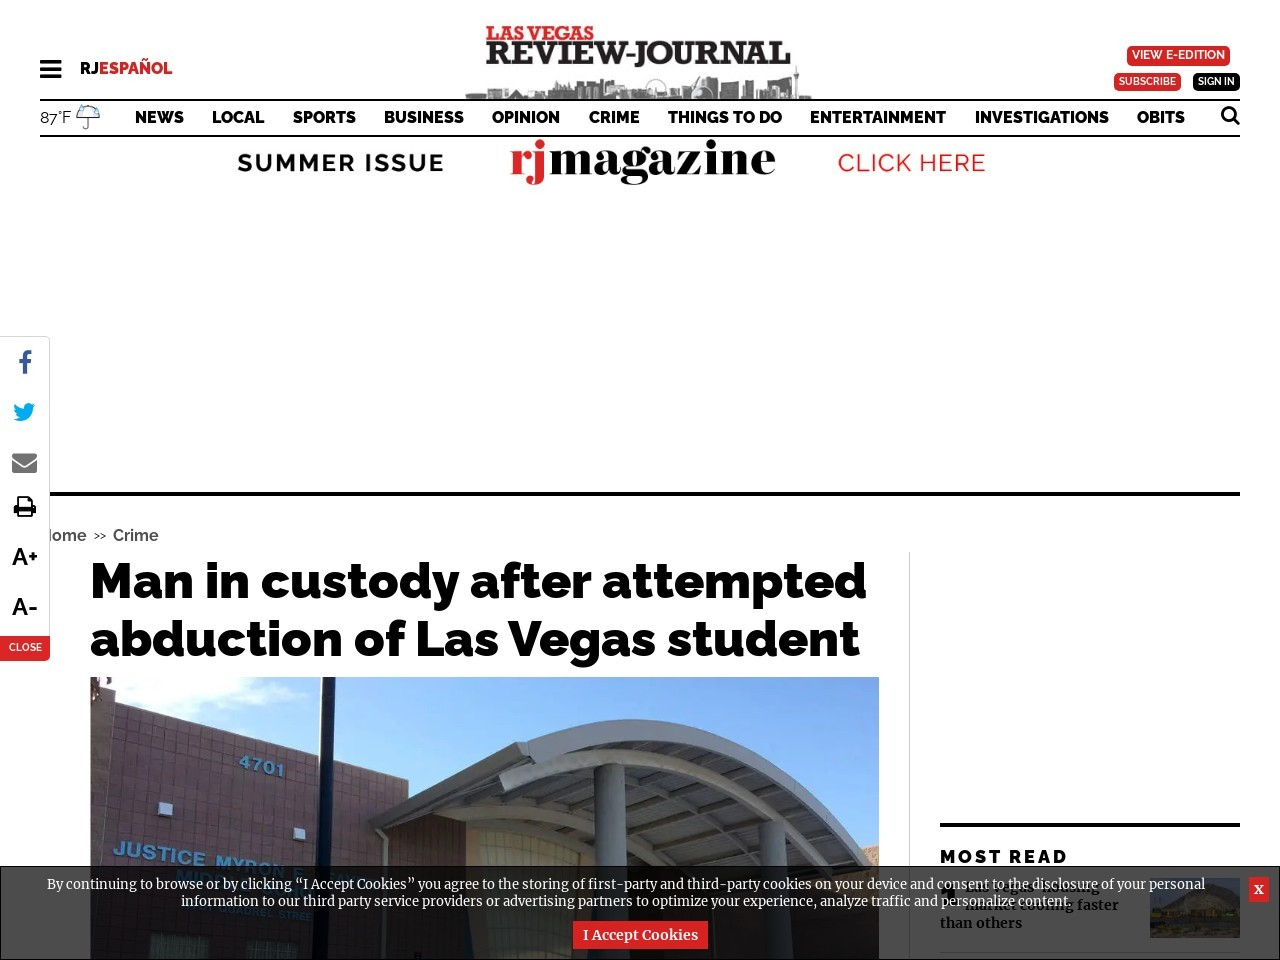 Man in custody after attempted abduction of Las Vegas student